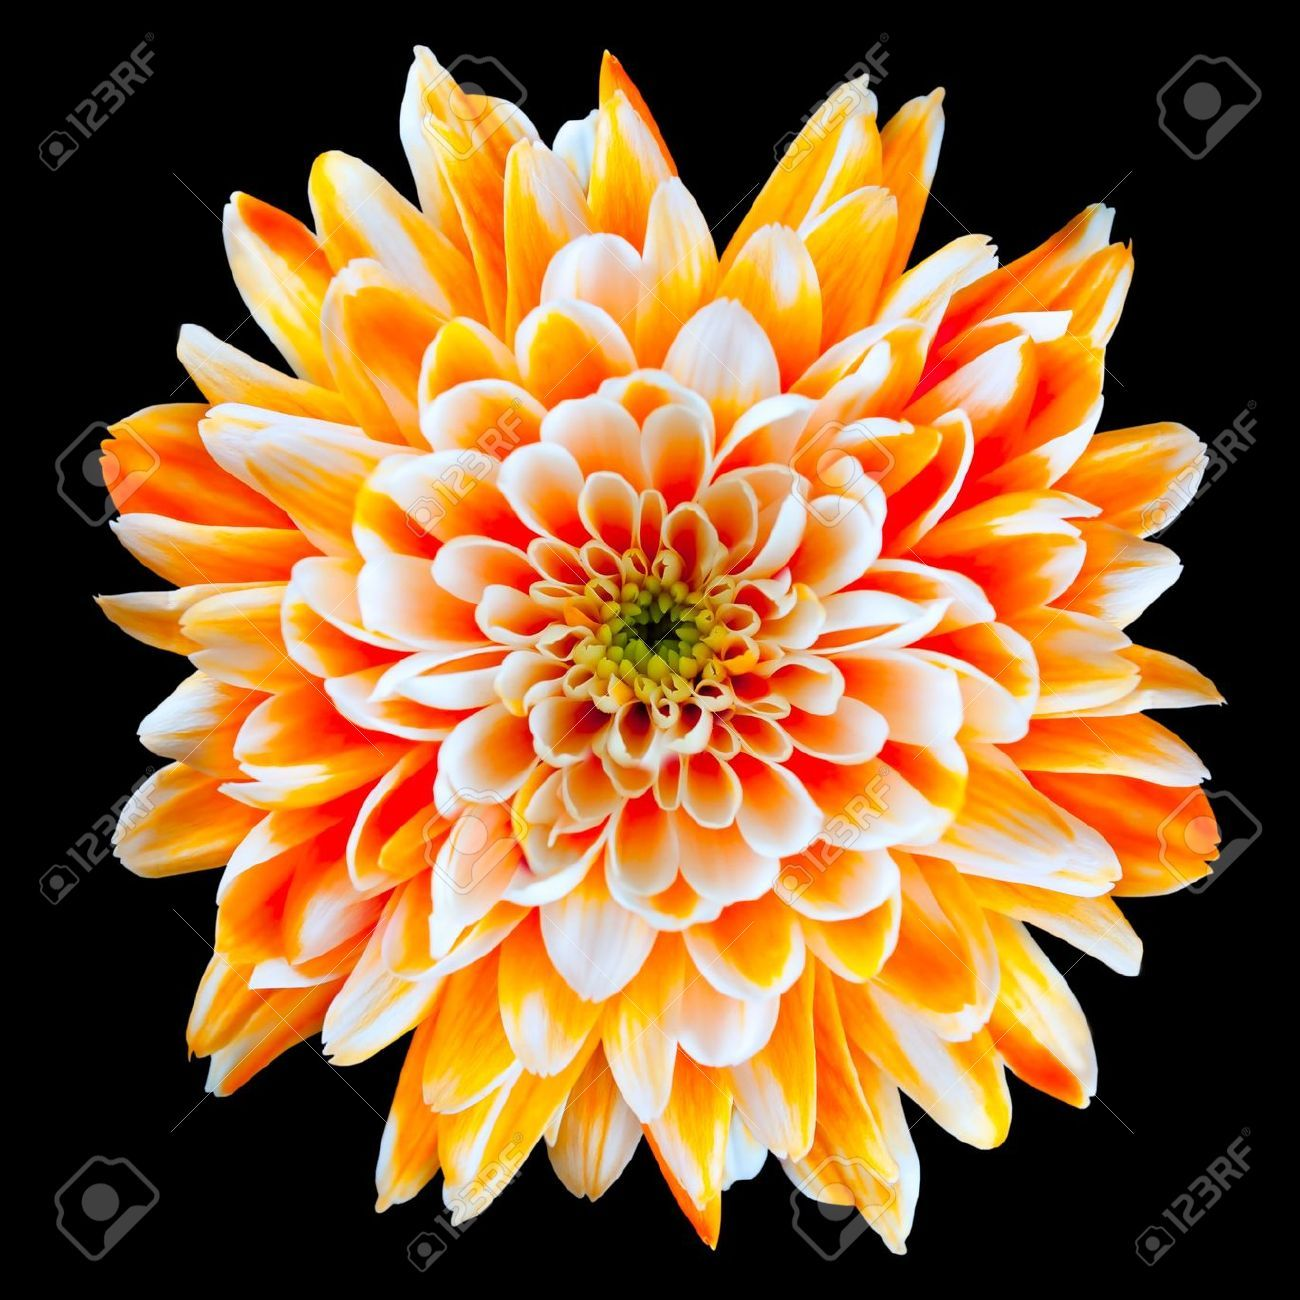 Chrysanthemum White Images Stock Pictures Royalty Free Chrysanthemum White Photos And Chrysanthemum Flower Birth Flower Tattoos Chrysanthemum Flower Pictures